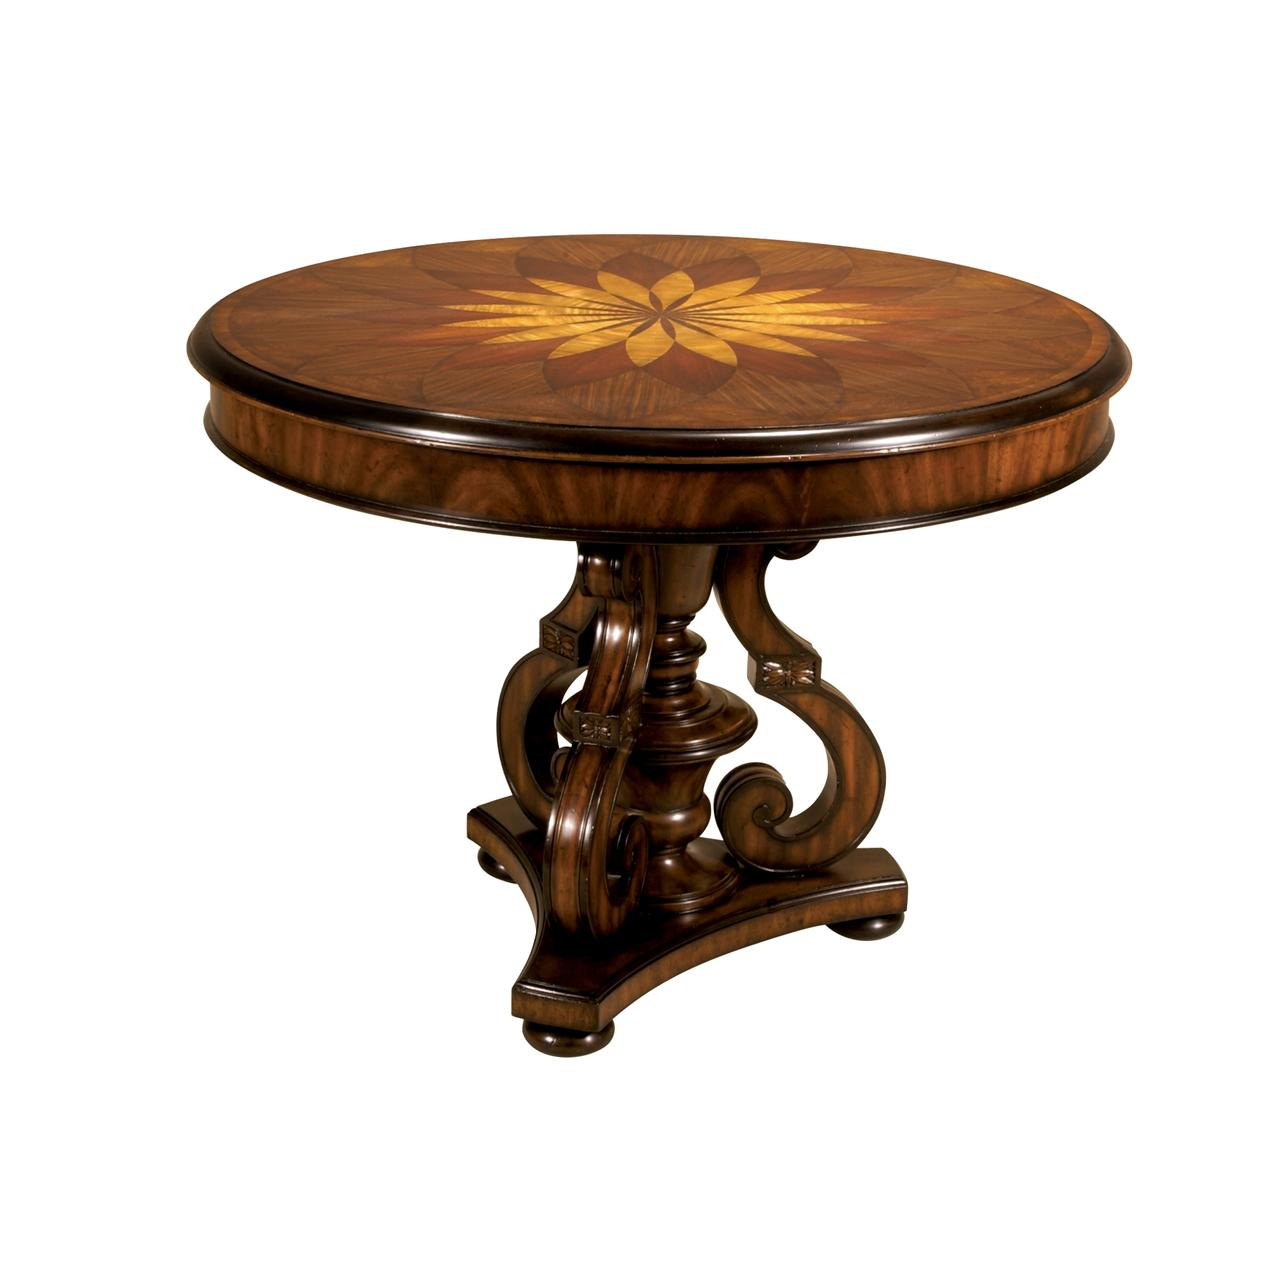 Handmade Marquetry, Round Inlaid Pedestal Table For A Foyer